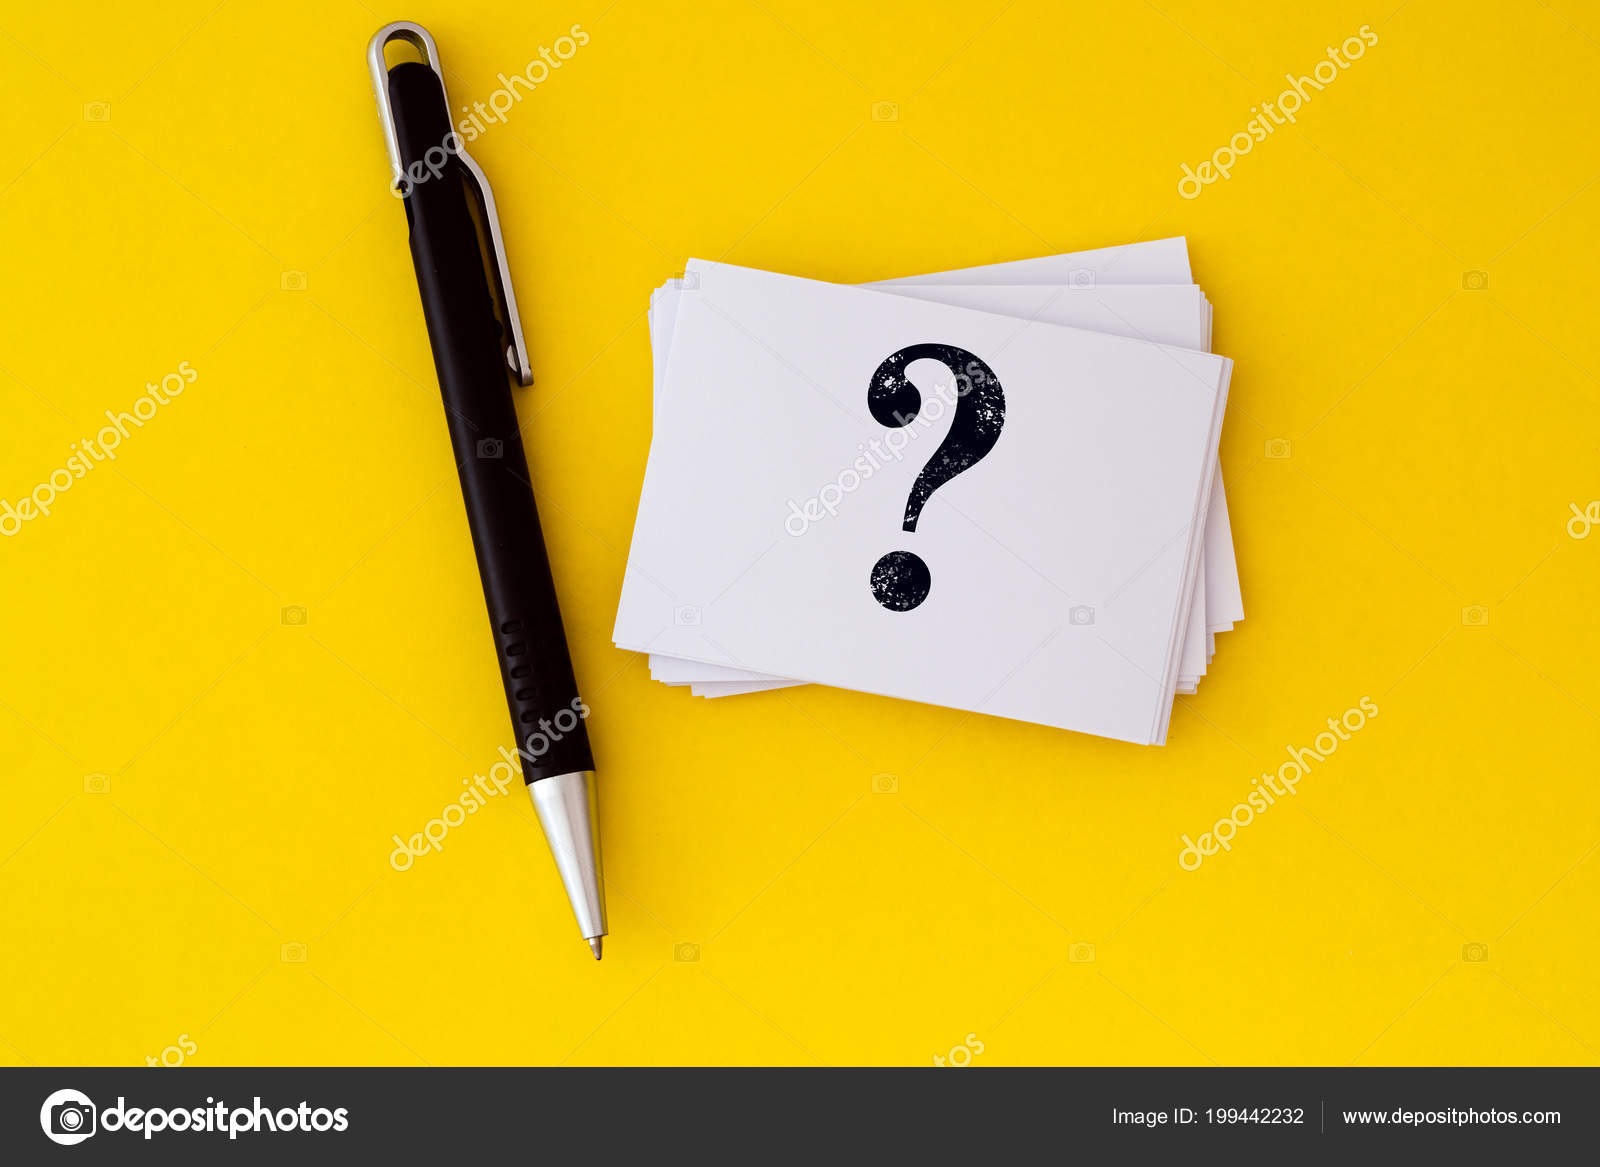 Stacking white business card written question mark symbol vibrant stacking of a white business card with written question mark symbol on vibrant yellow background questions and answers or qa concept design foto de reheart Images